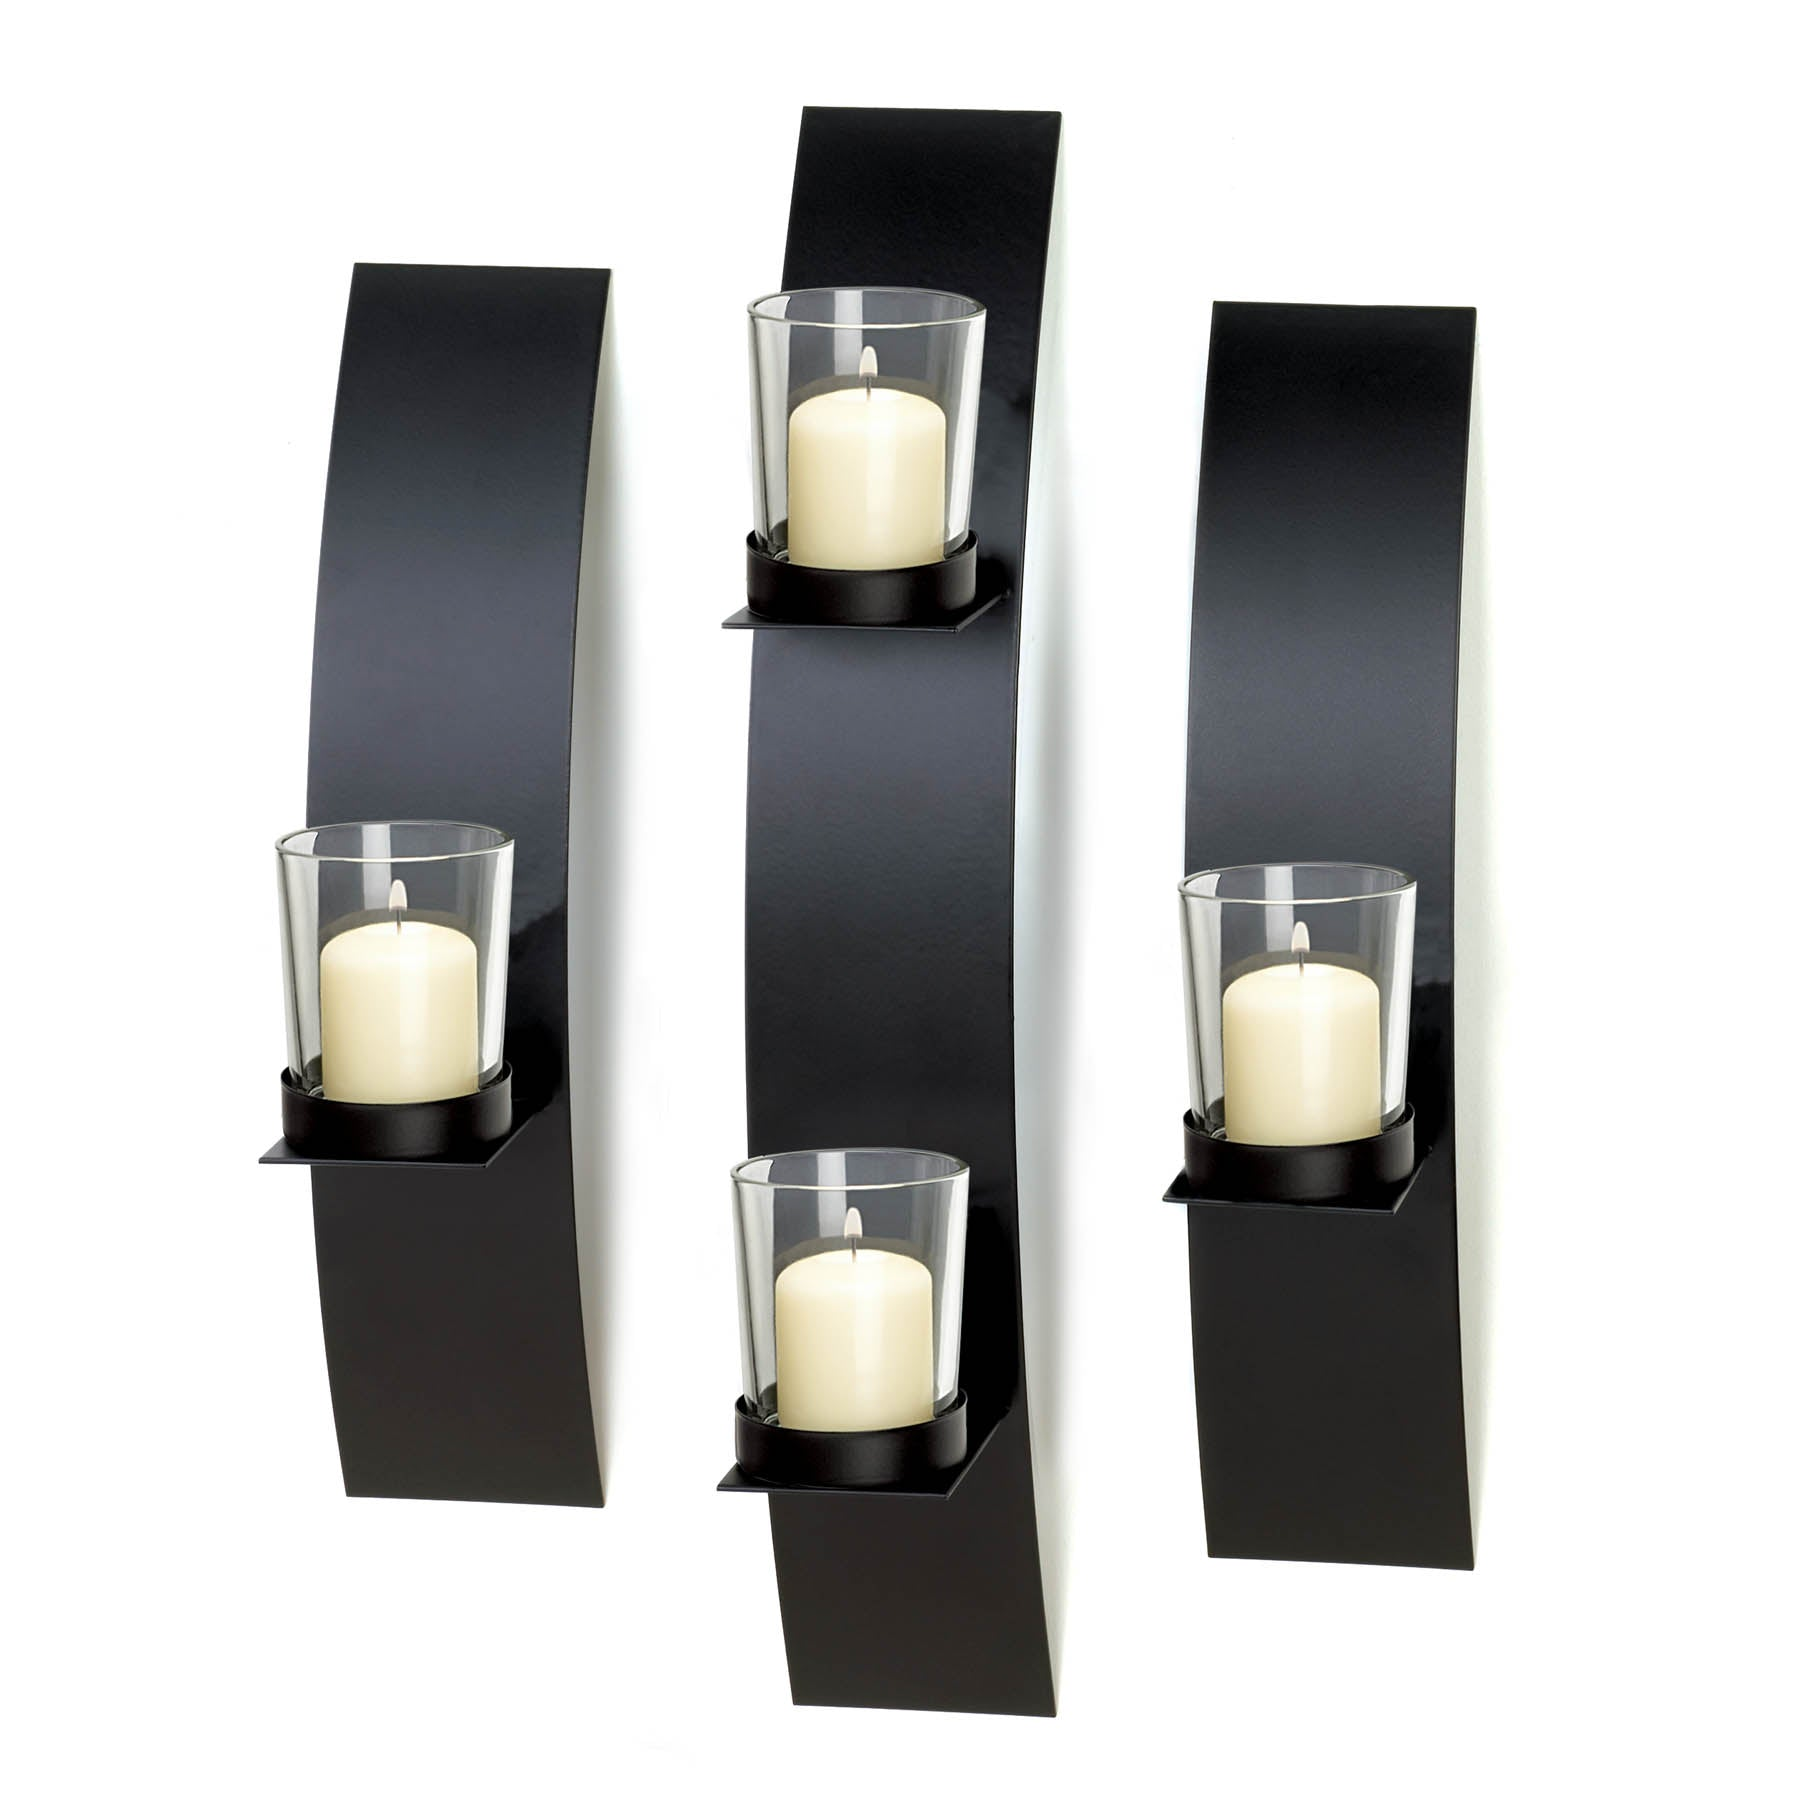 Gallery of Light Contemporary Wall Sconce Trio - 10015844